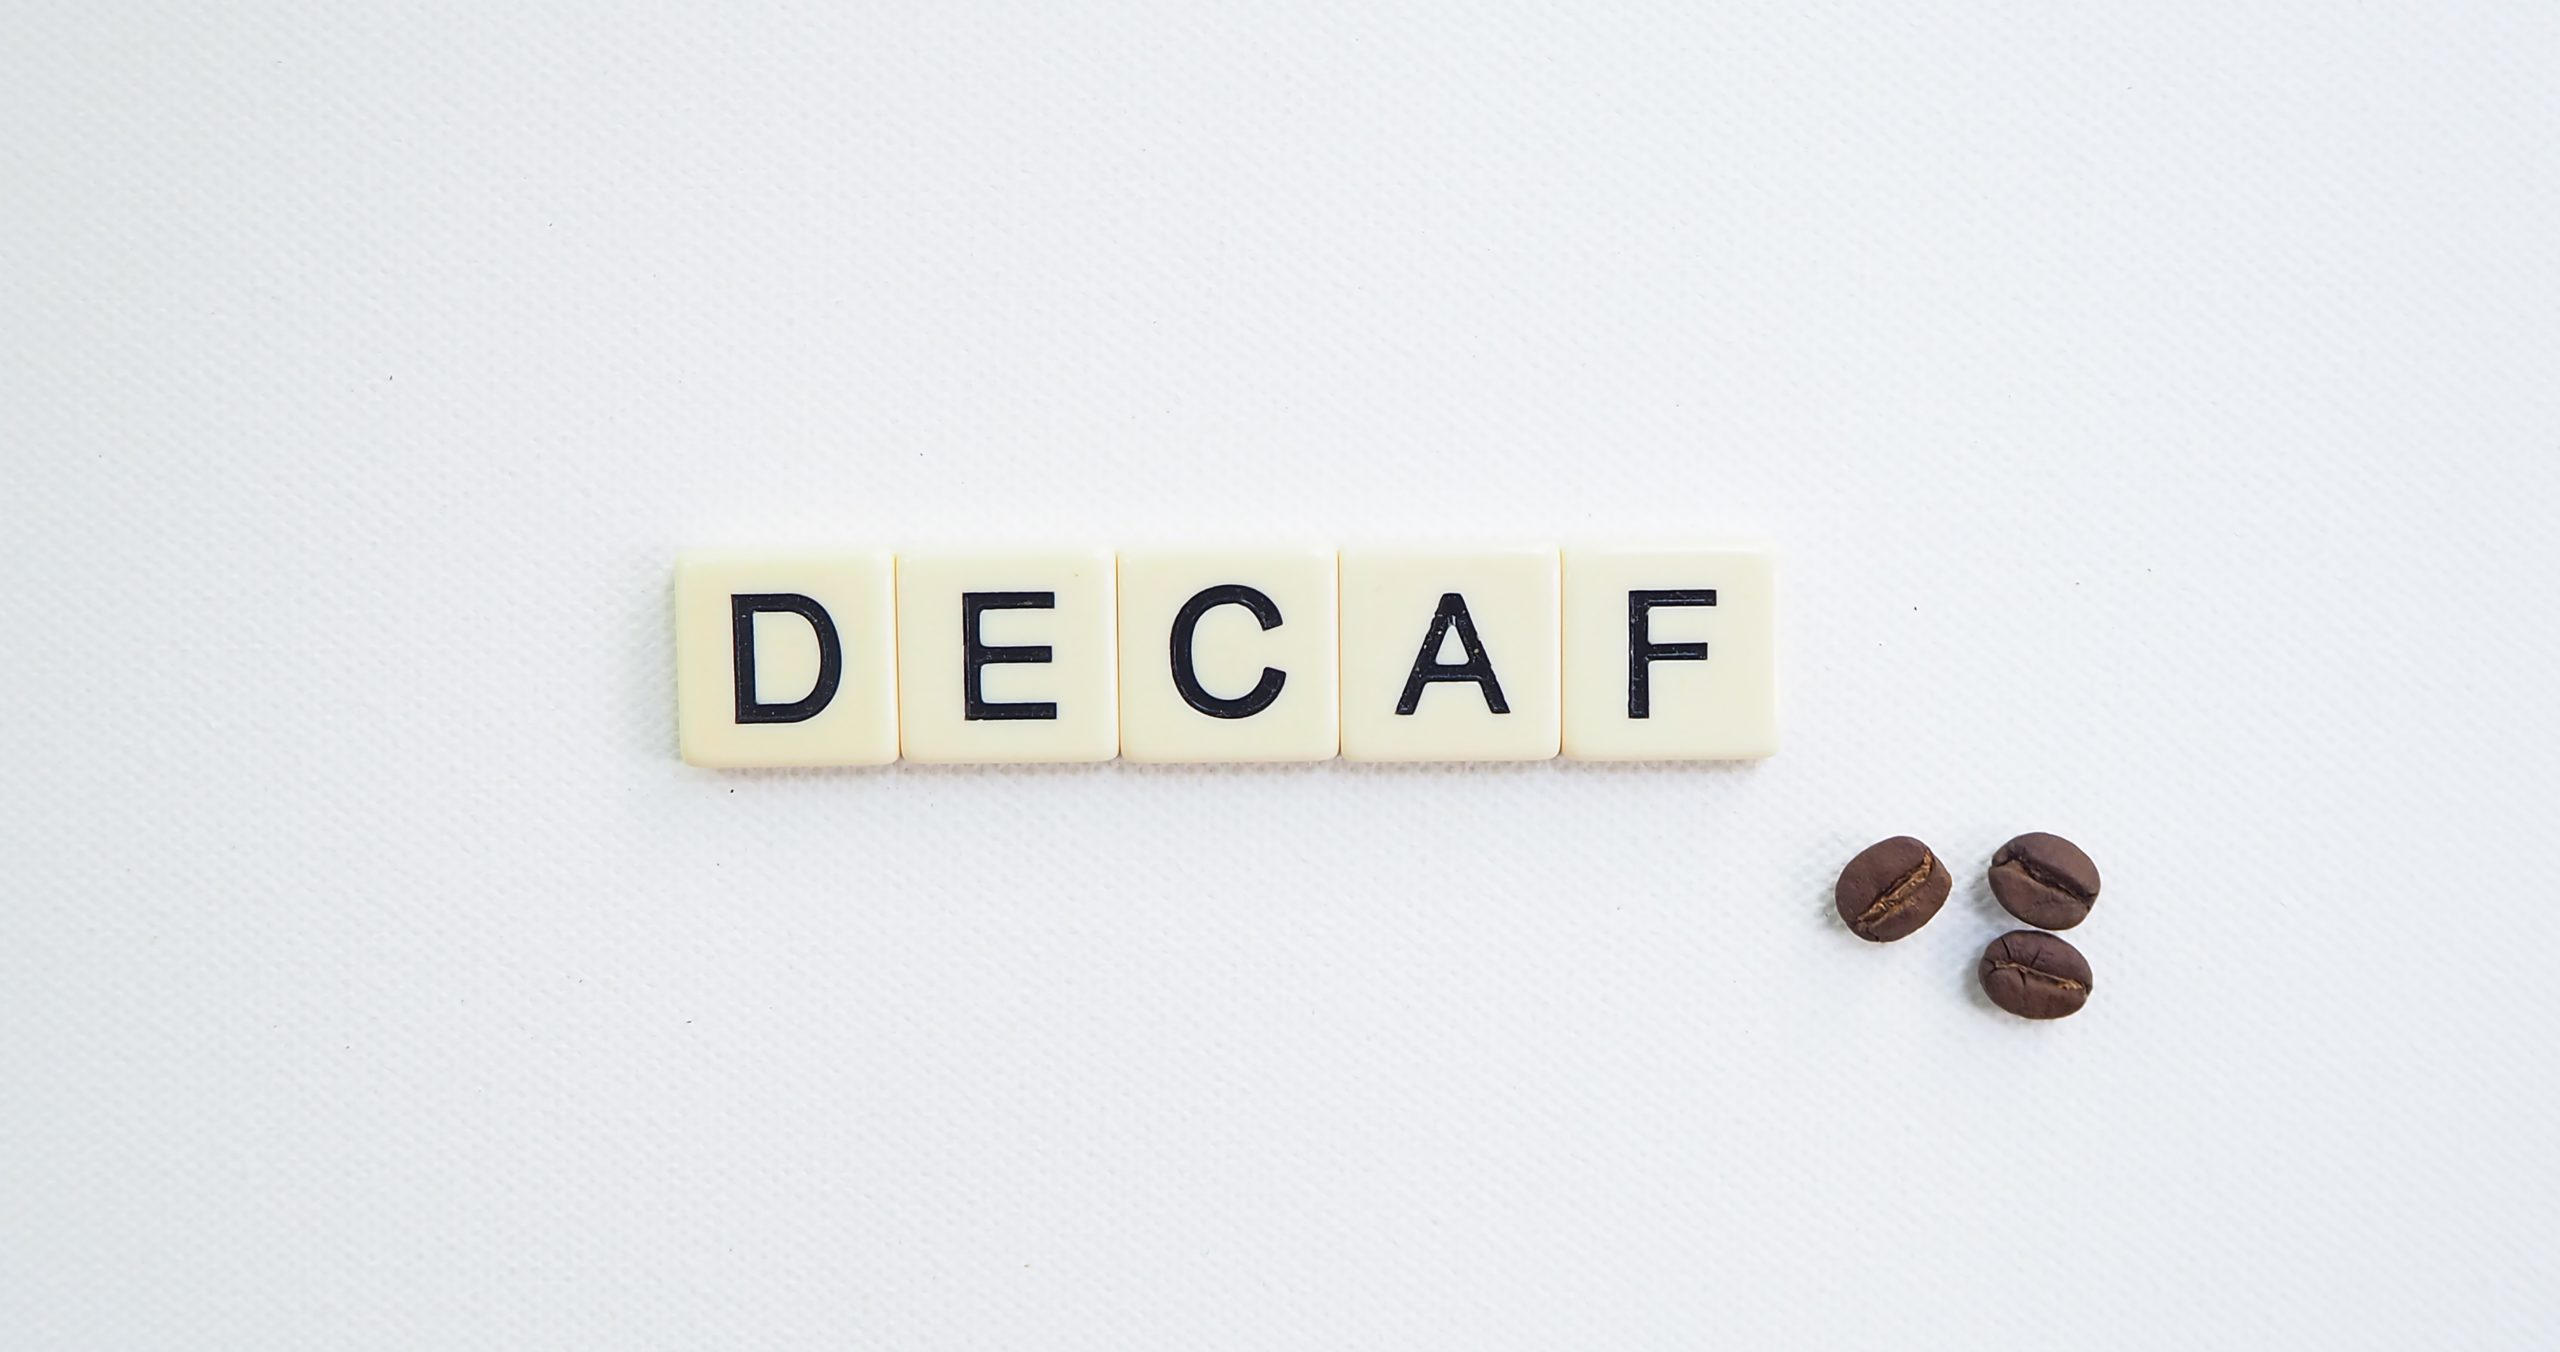 alphabets and coffee beans on table